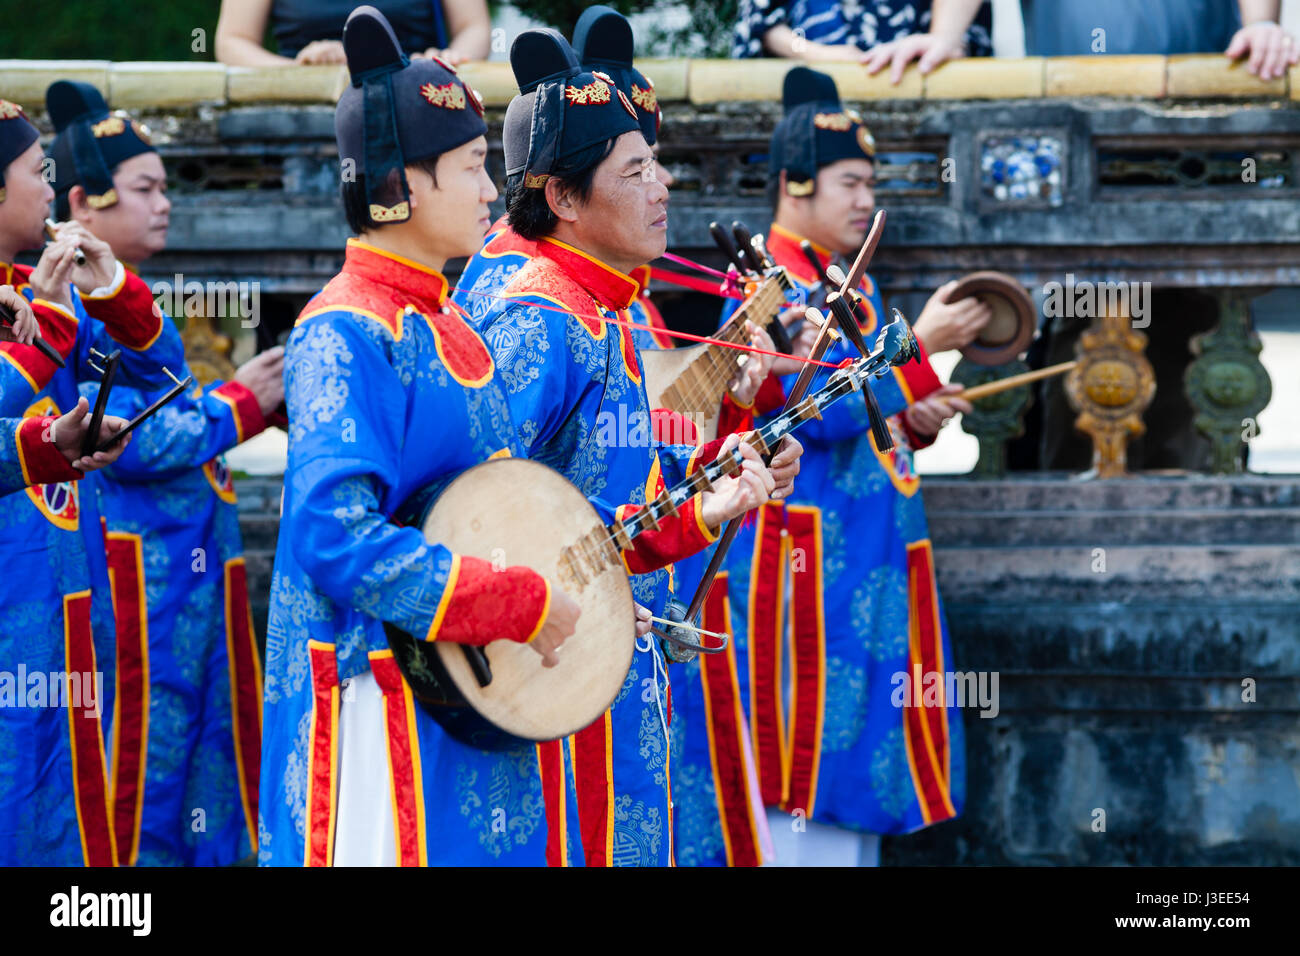 Hoi An, Vietnam - march 10 2017: vietnamese traditional music band is giving concert in Imperial Citadel. Musician Stock Photo